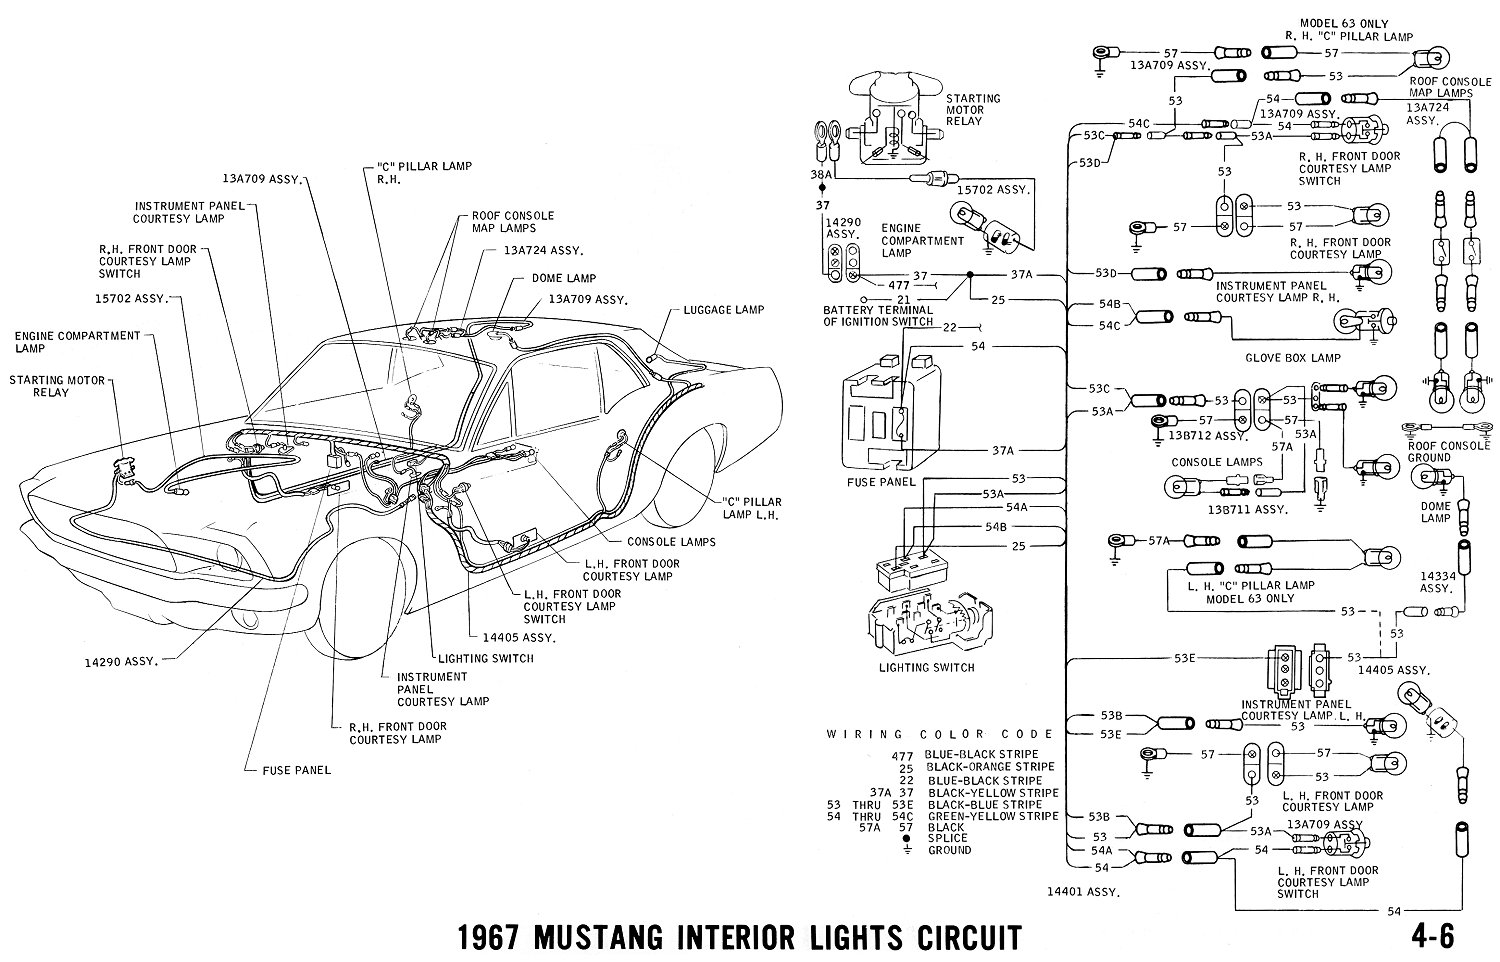 1967 camaro door latch diagram wiring schematic